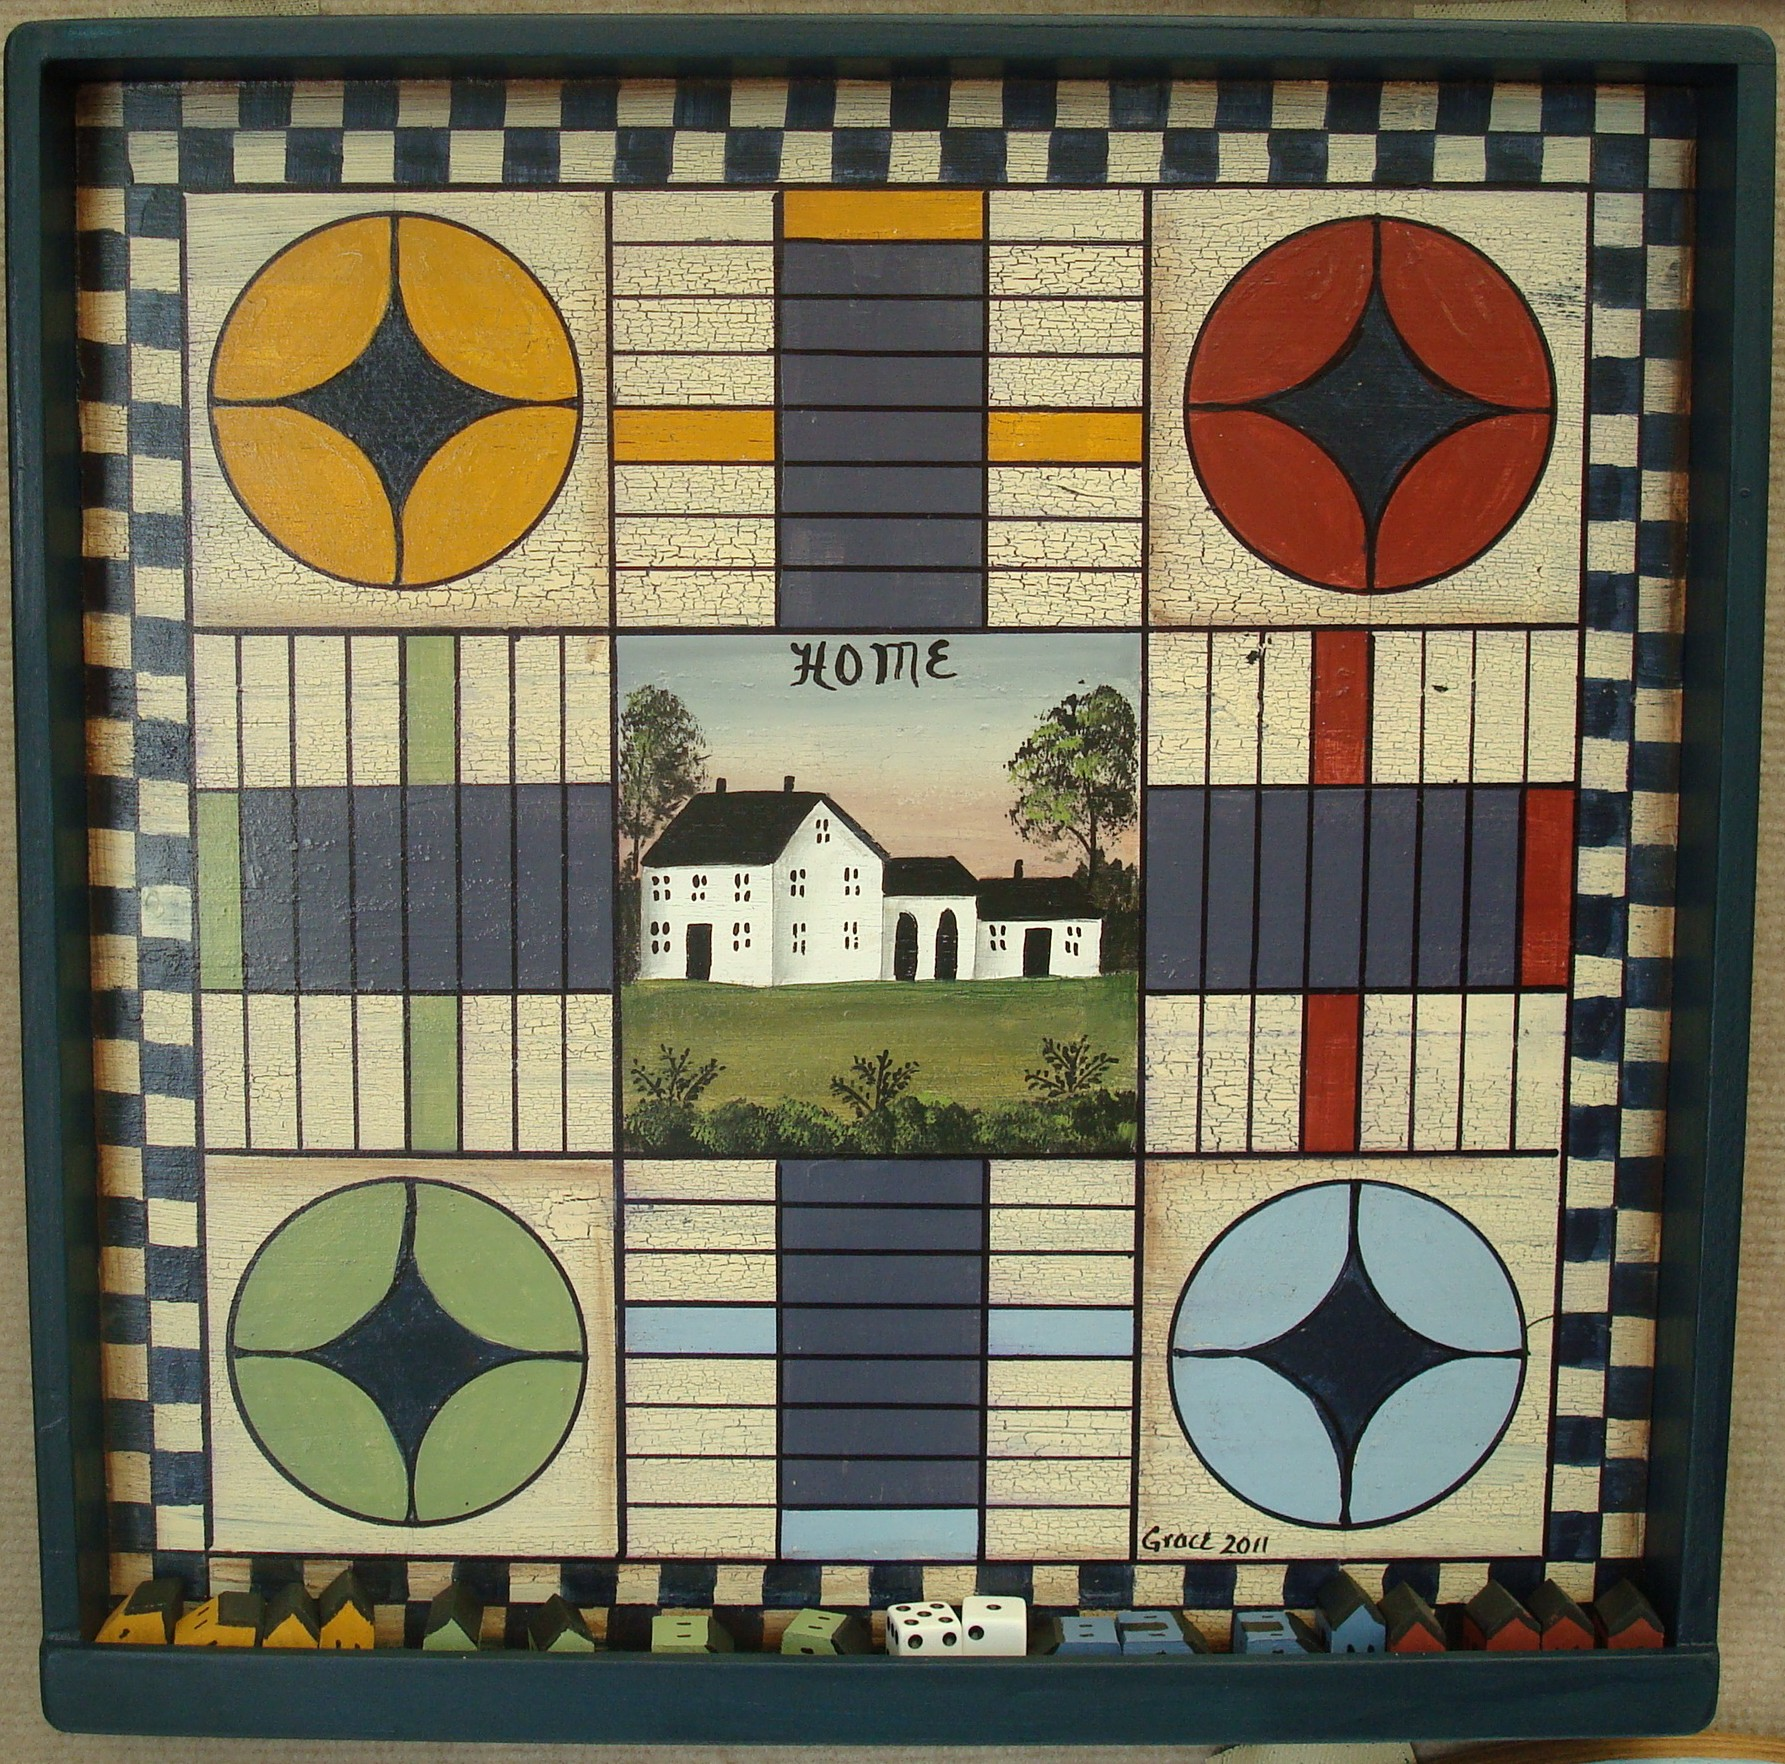 Country Home Pachisi Board